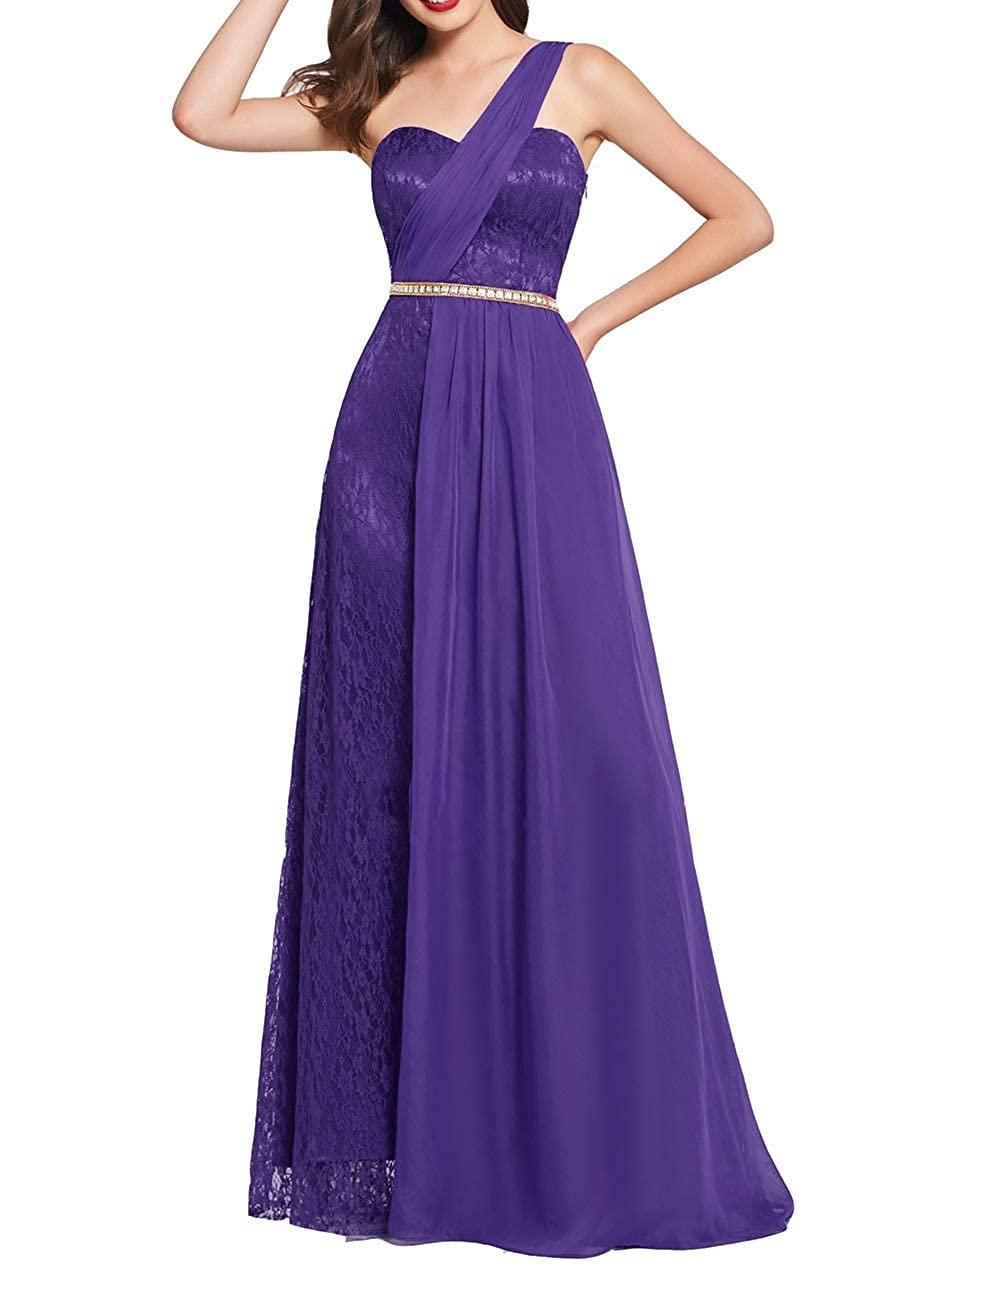 Uther Long Prom Dress One Shoulder Lace Chiffon Bridesmaid Dresses A-Line Evening Gown